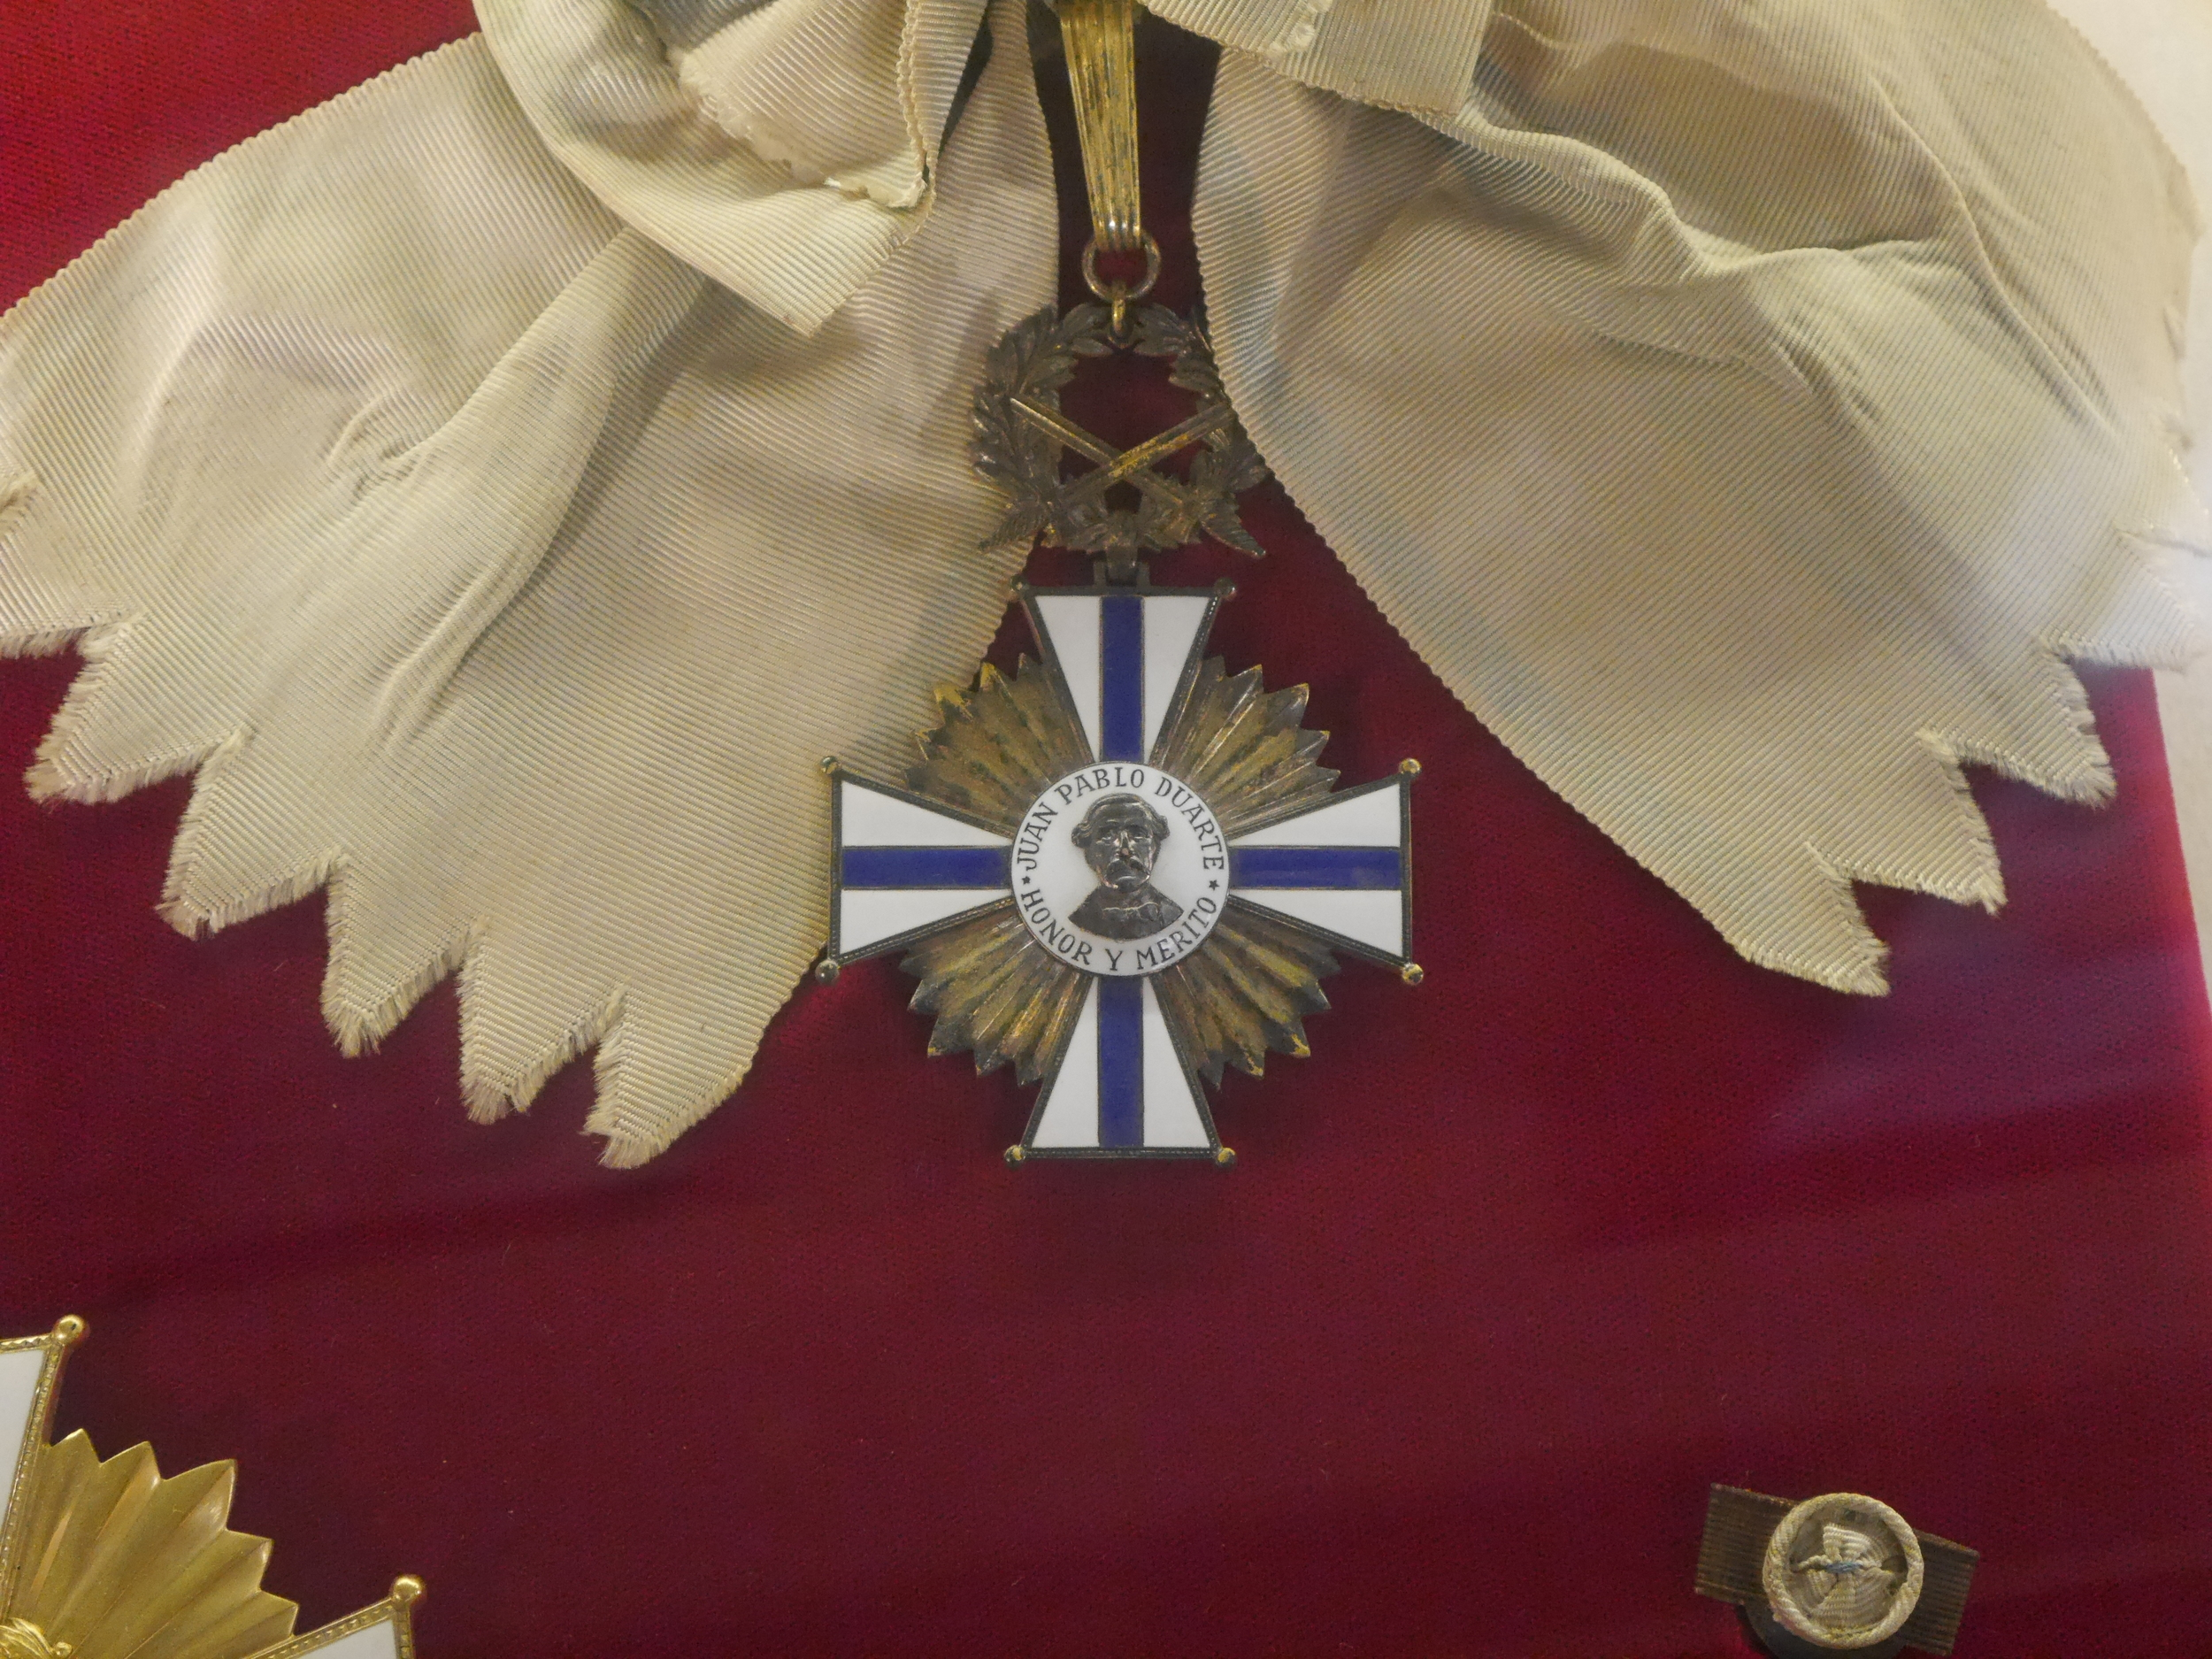 The medal up close.